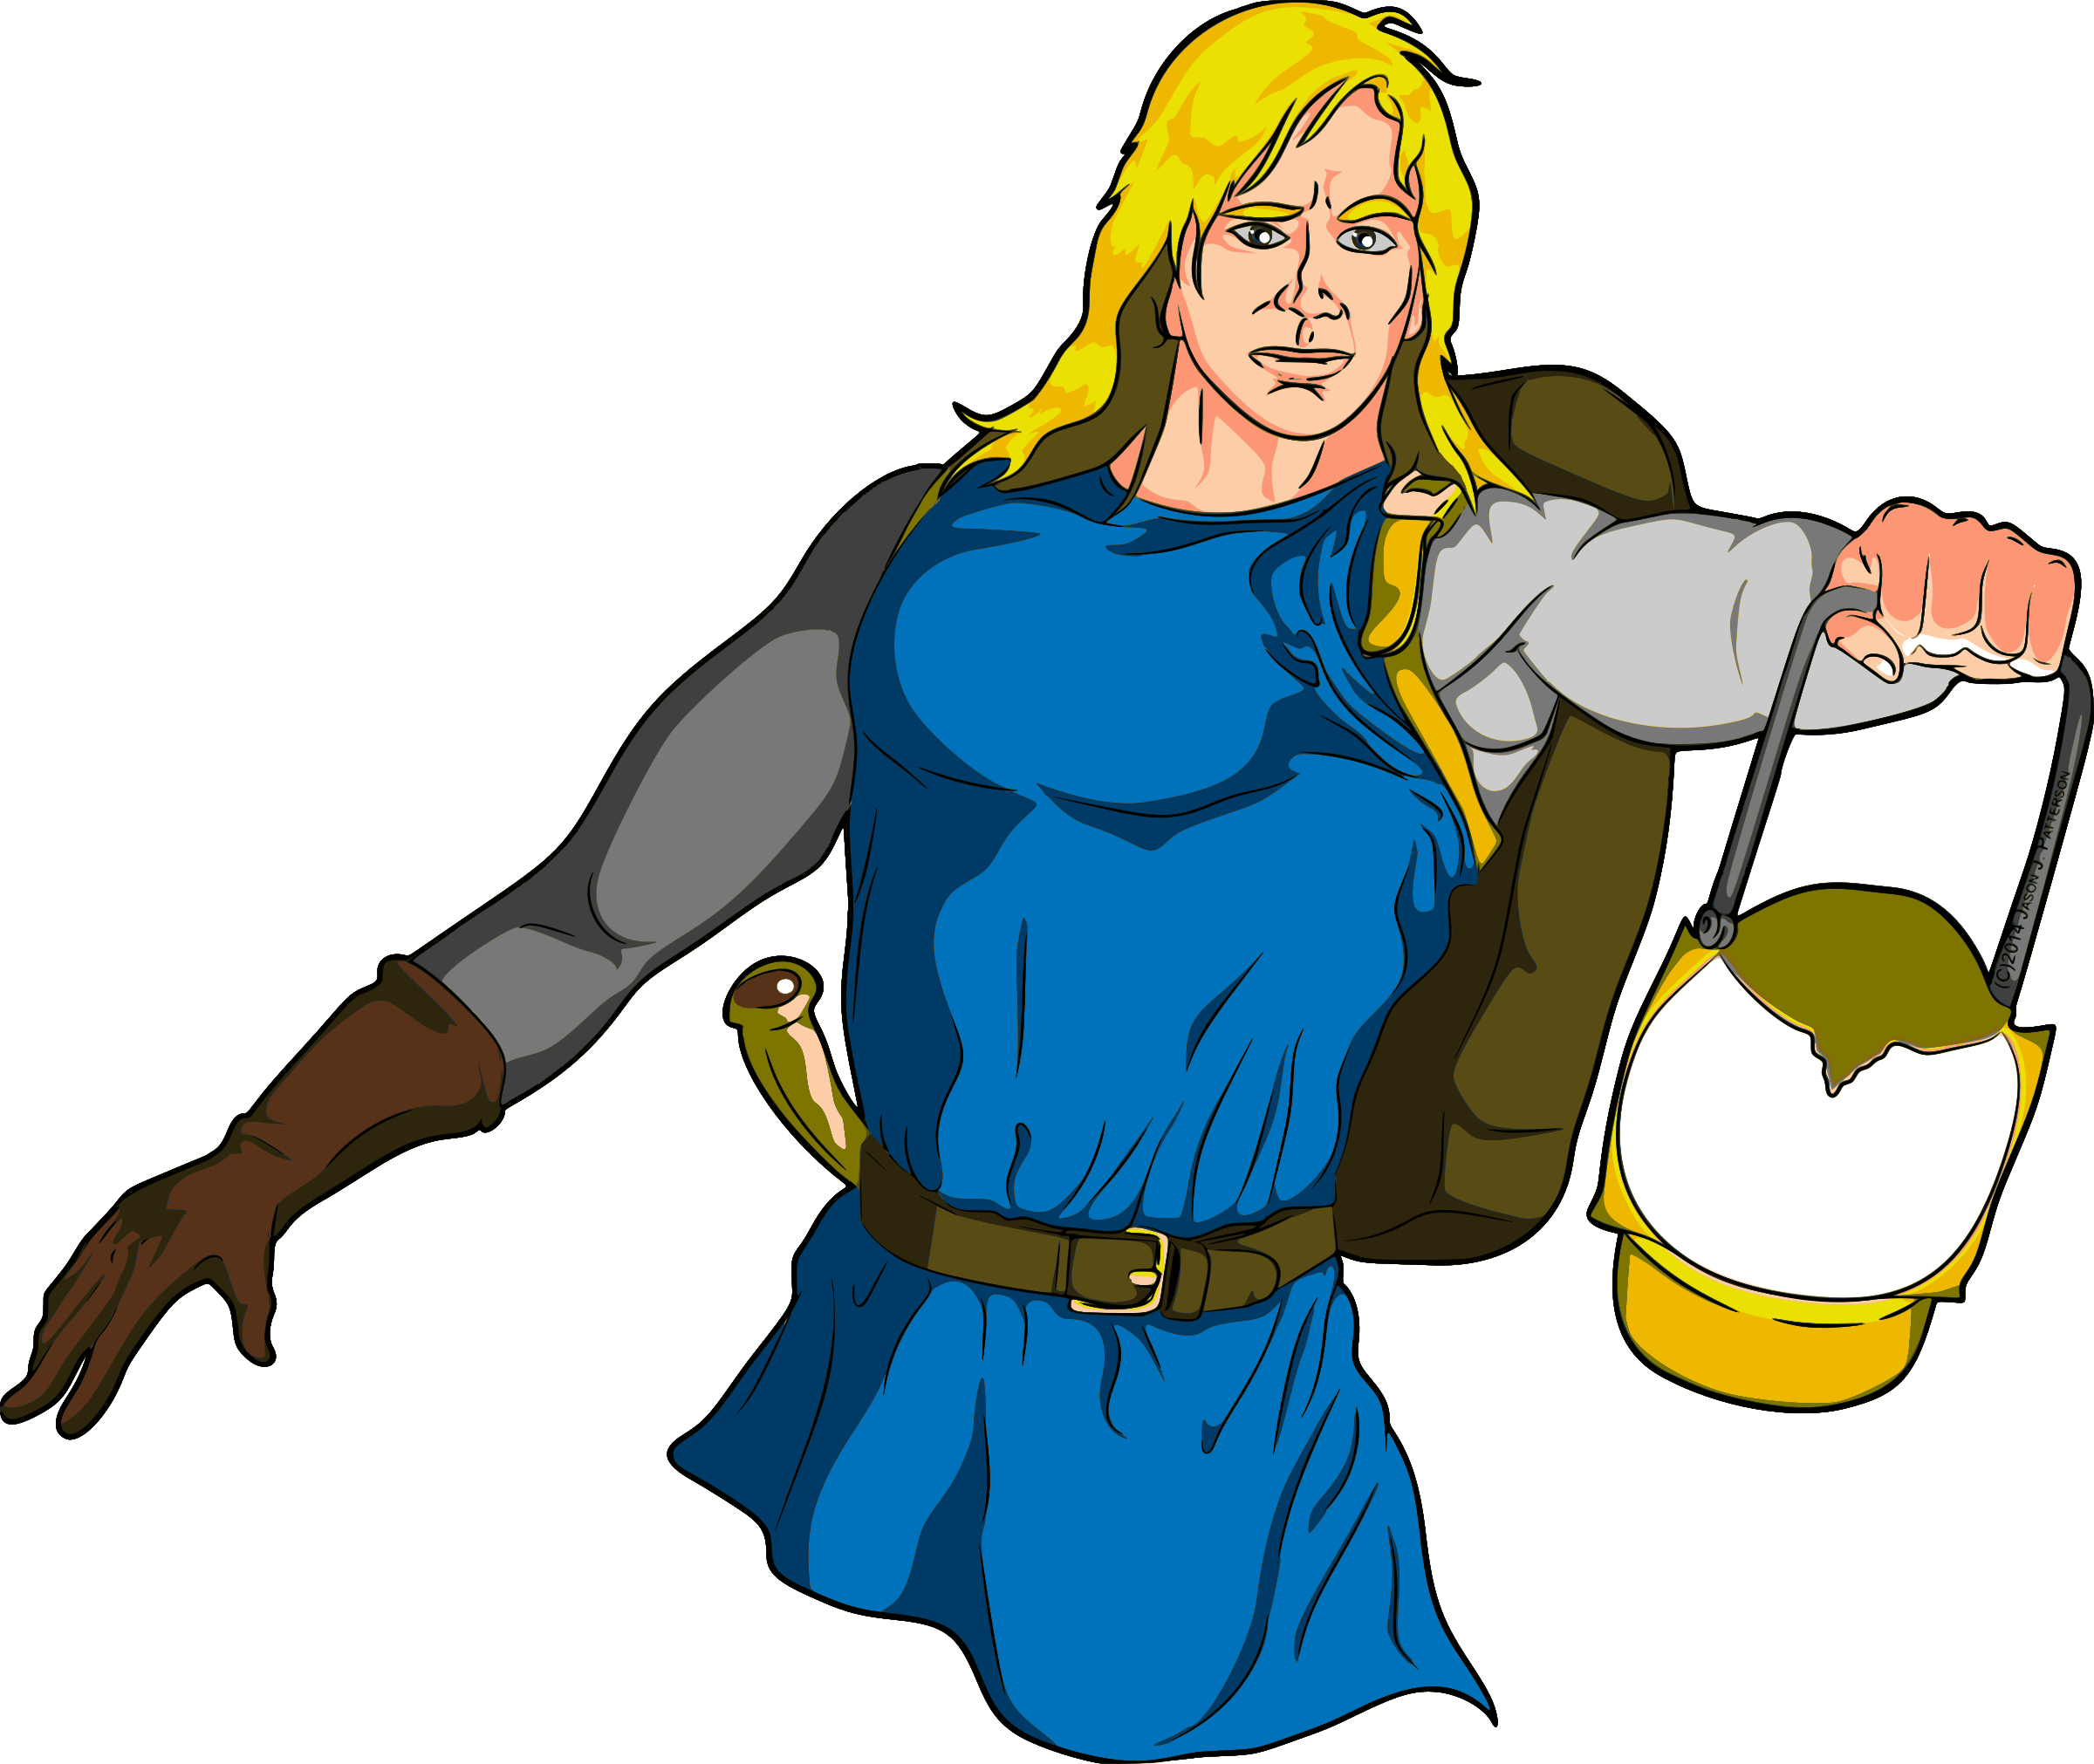 Male adventurer with lantern. Medieval clipart medieval person